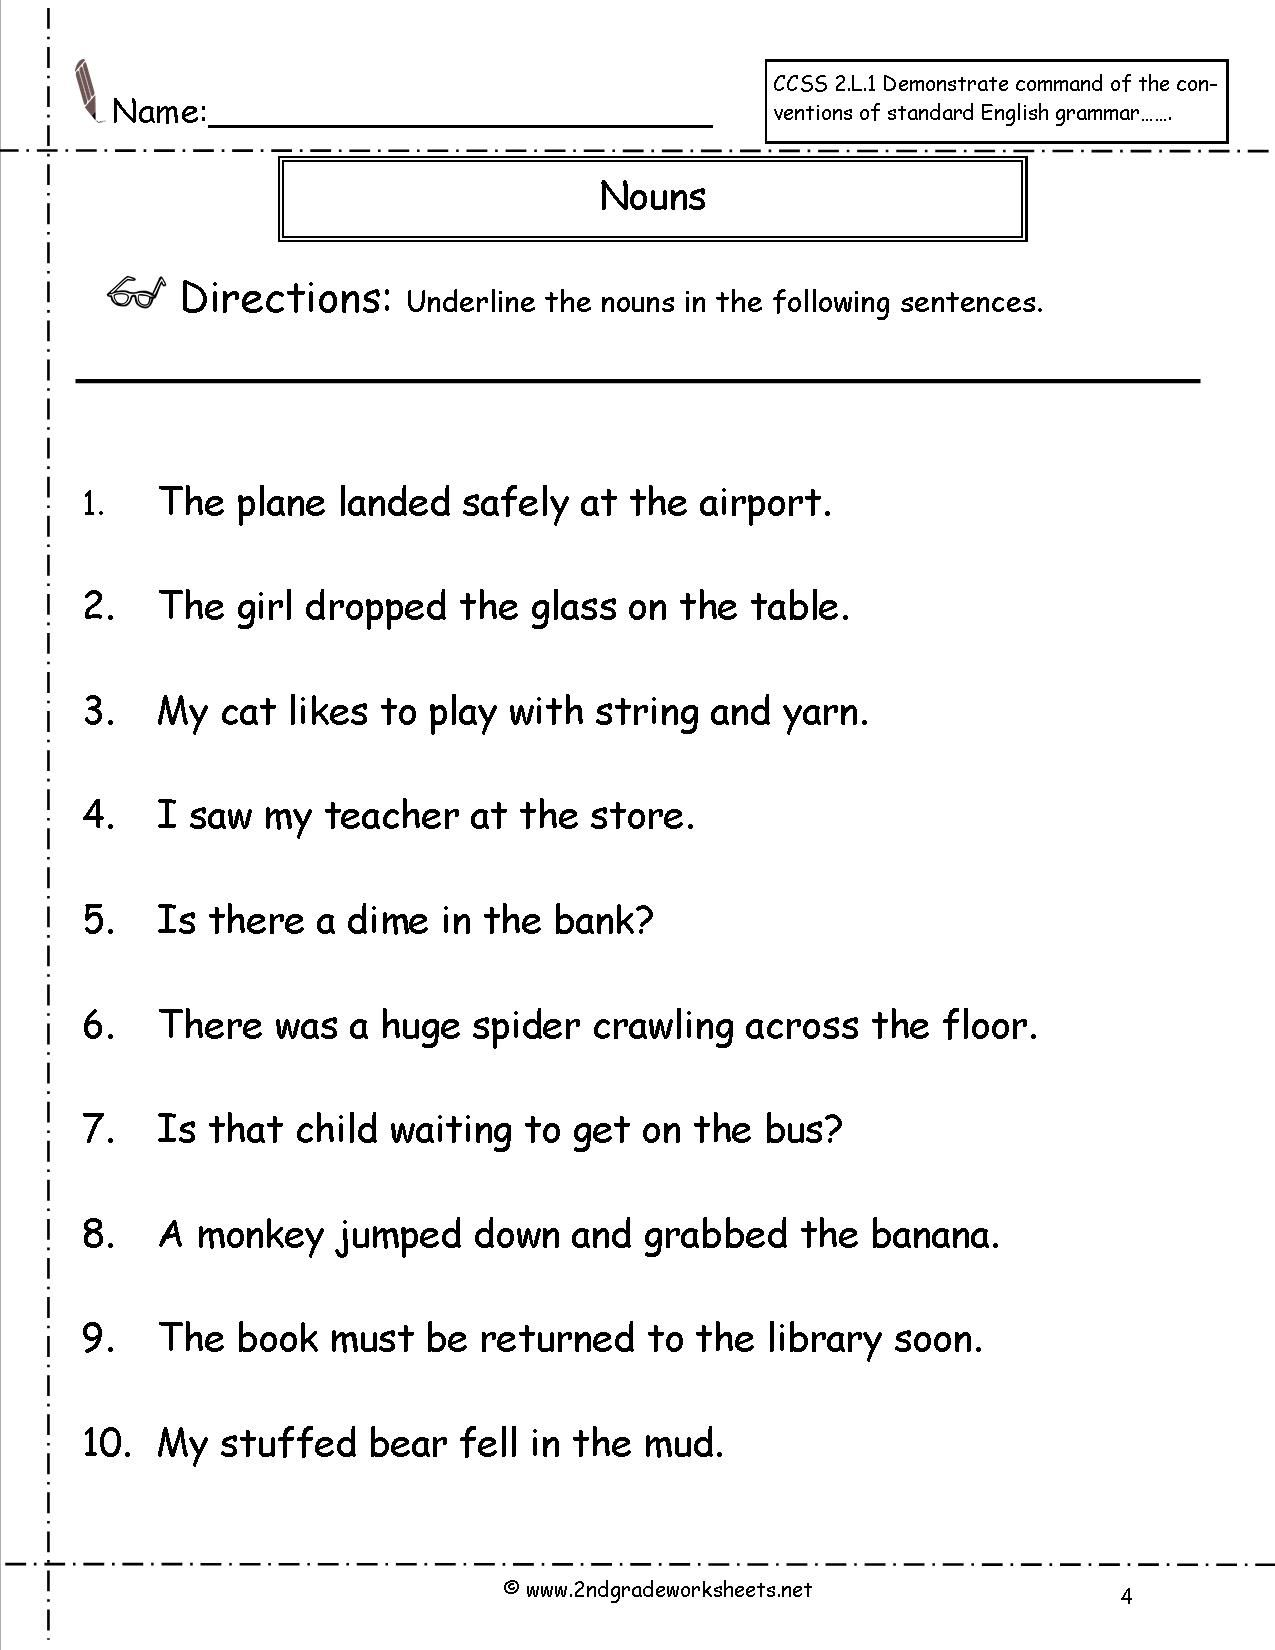 hight resolution of nouns4.jpg (1275×1650)   Grammar worksheets